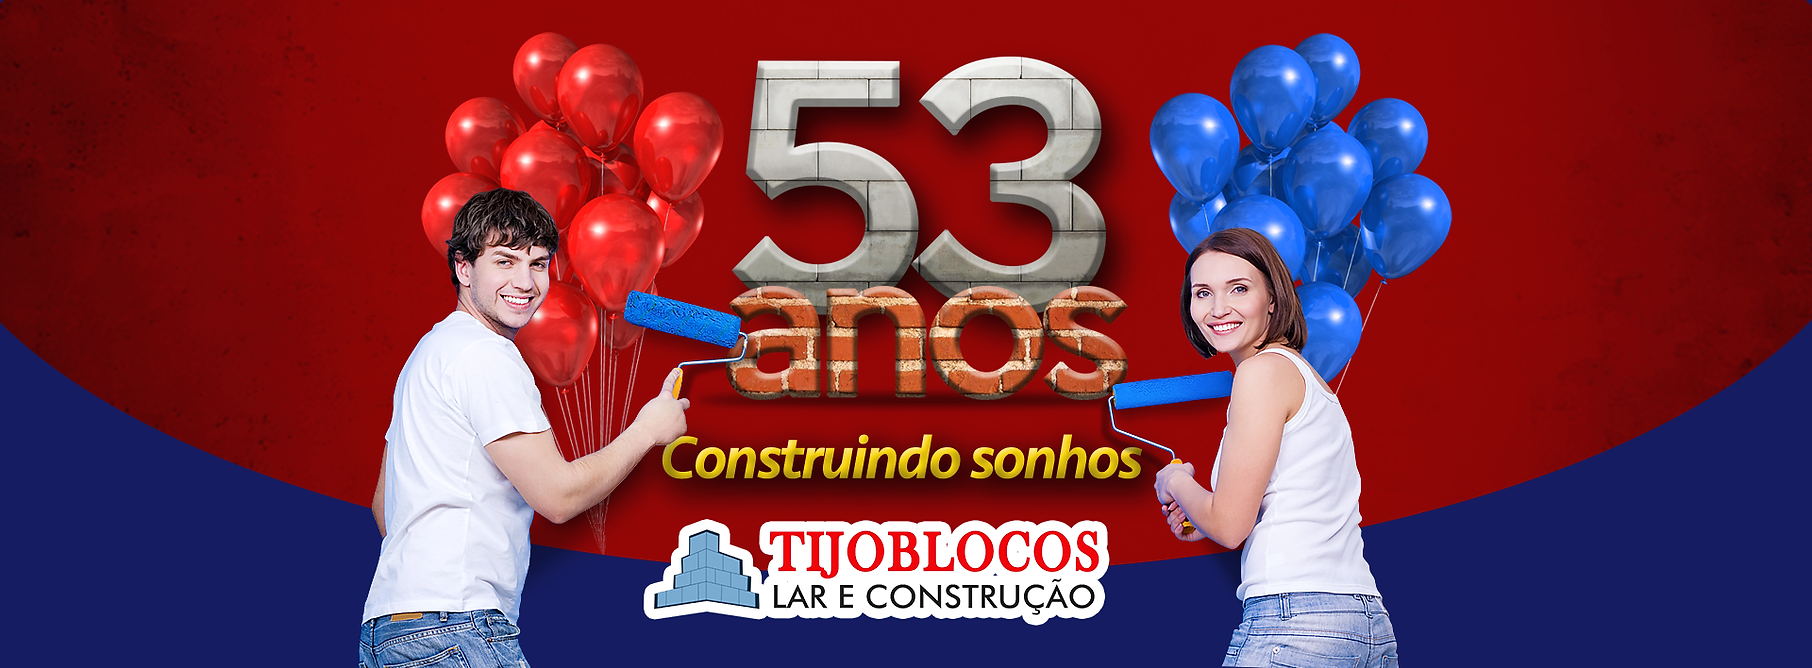 BANNER SITE 53 ANOS TIJOBLOCOS.png